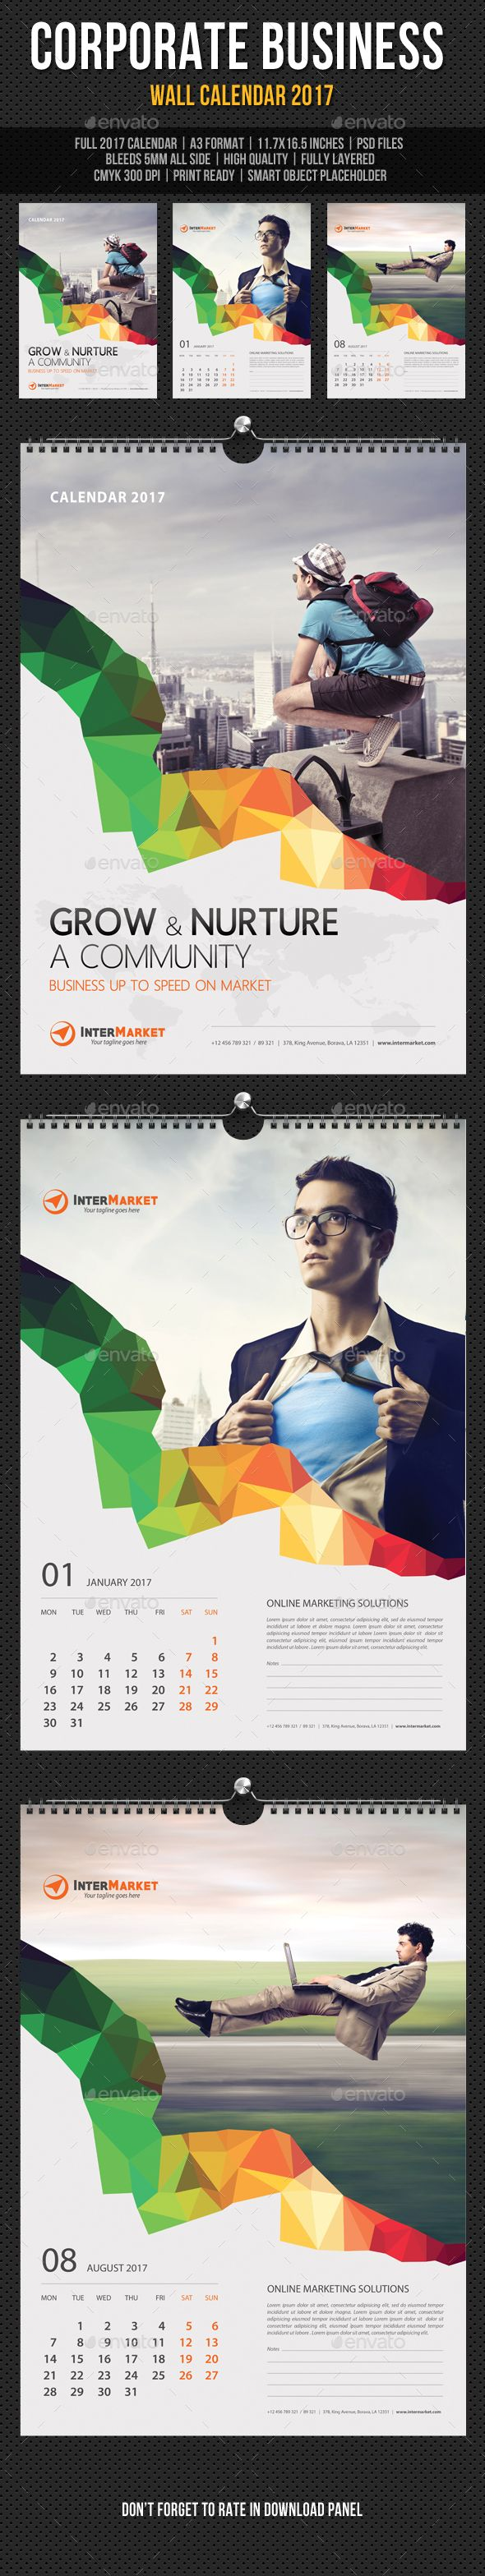 Corporate Business Wall Calendar 2017 Template PSD. Download here: https://graphicriver.net/item/corporate-business-wall-calendar-2017-v07/16965137?ref=ksioks